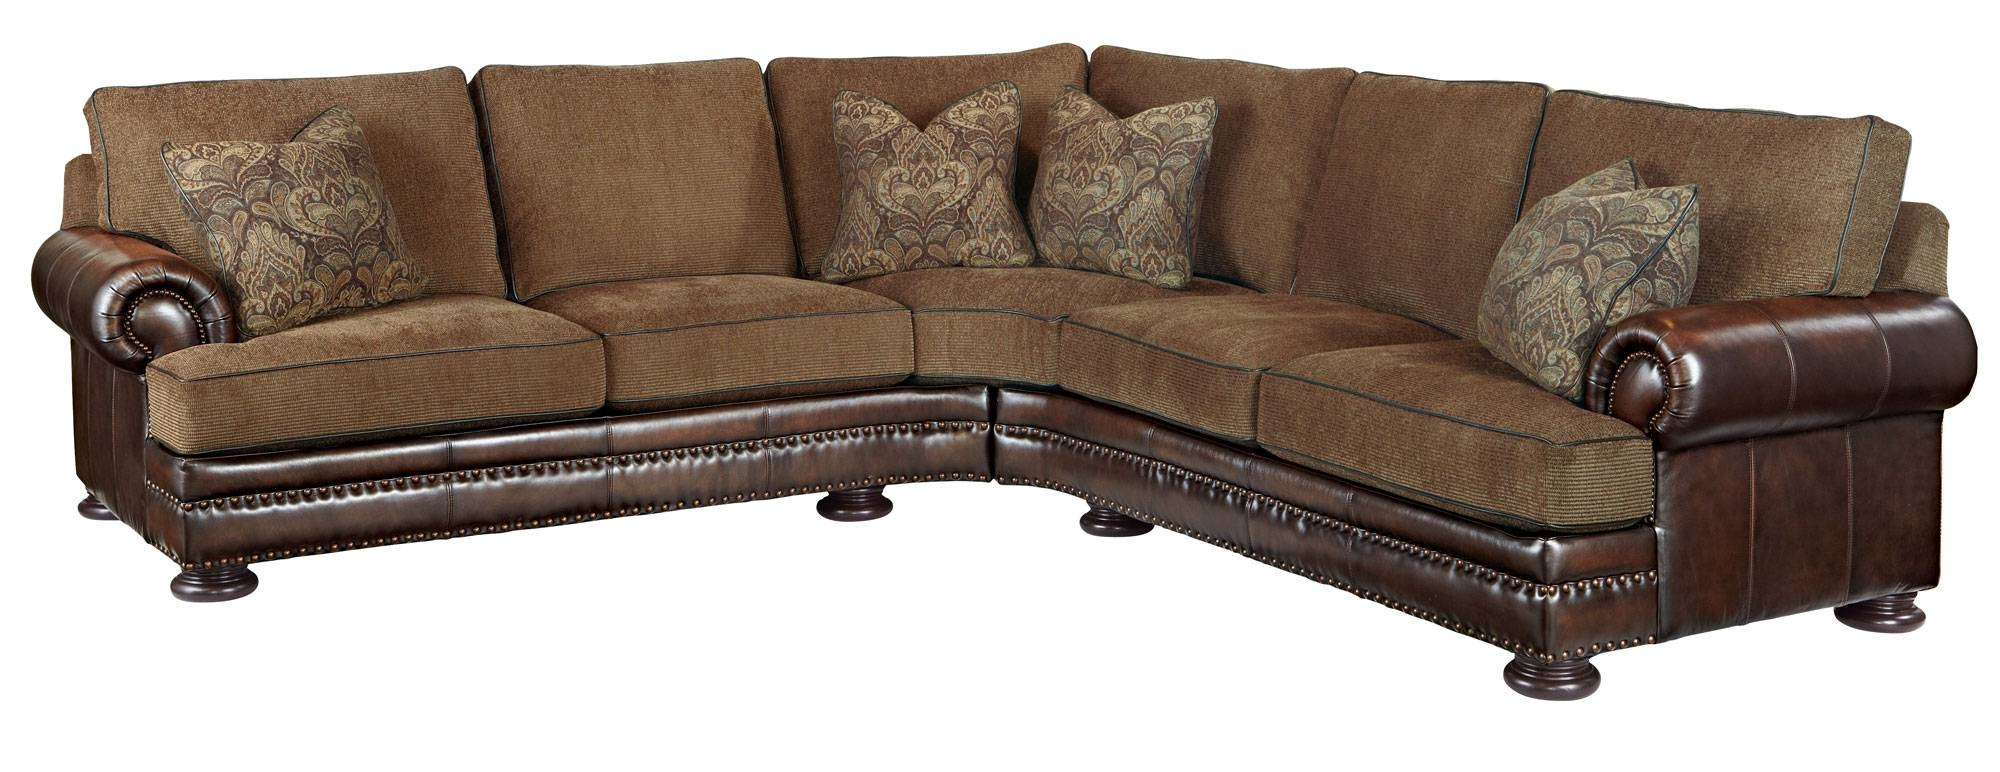 Amazing Leather And Cloth Sectional Sofas 45 About Remodel Abbyson inside Abbyson Living Charlotte Dark Brown Sectional Sofa And Ottoman (Image 2 of 30)